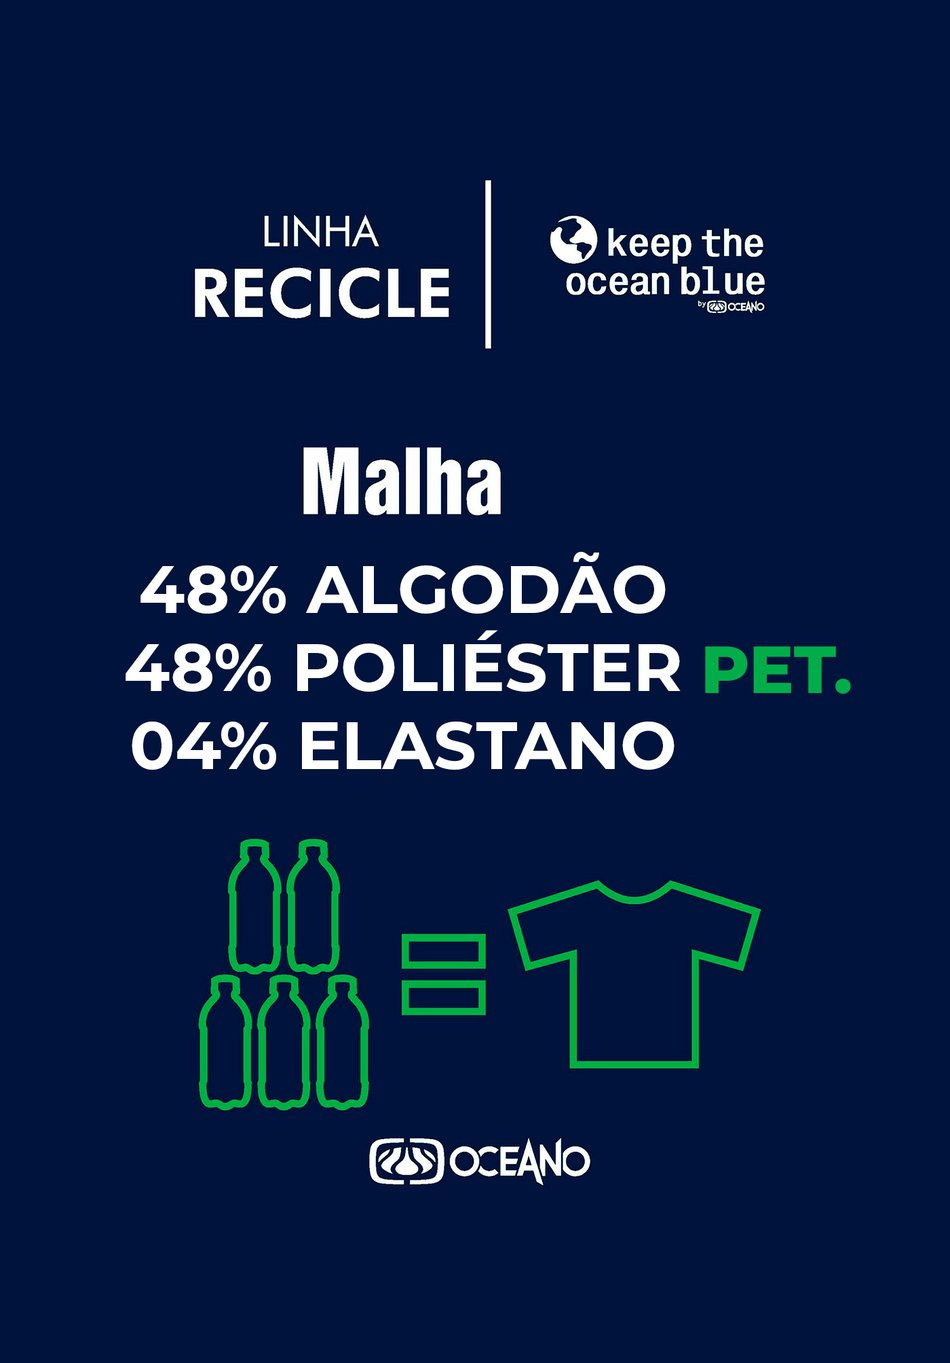 CAMISETA OCEANO ECO PRESERVE KEEP RECICLE